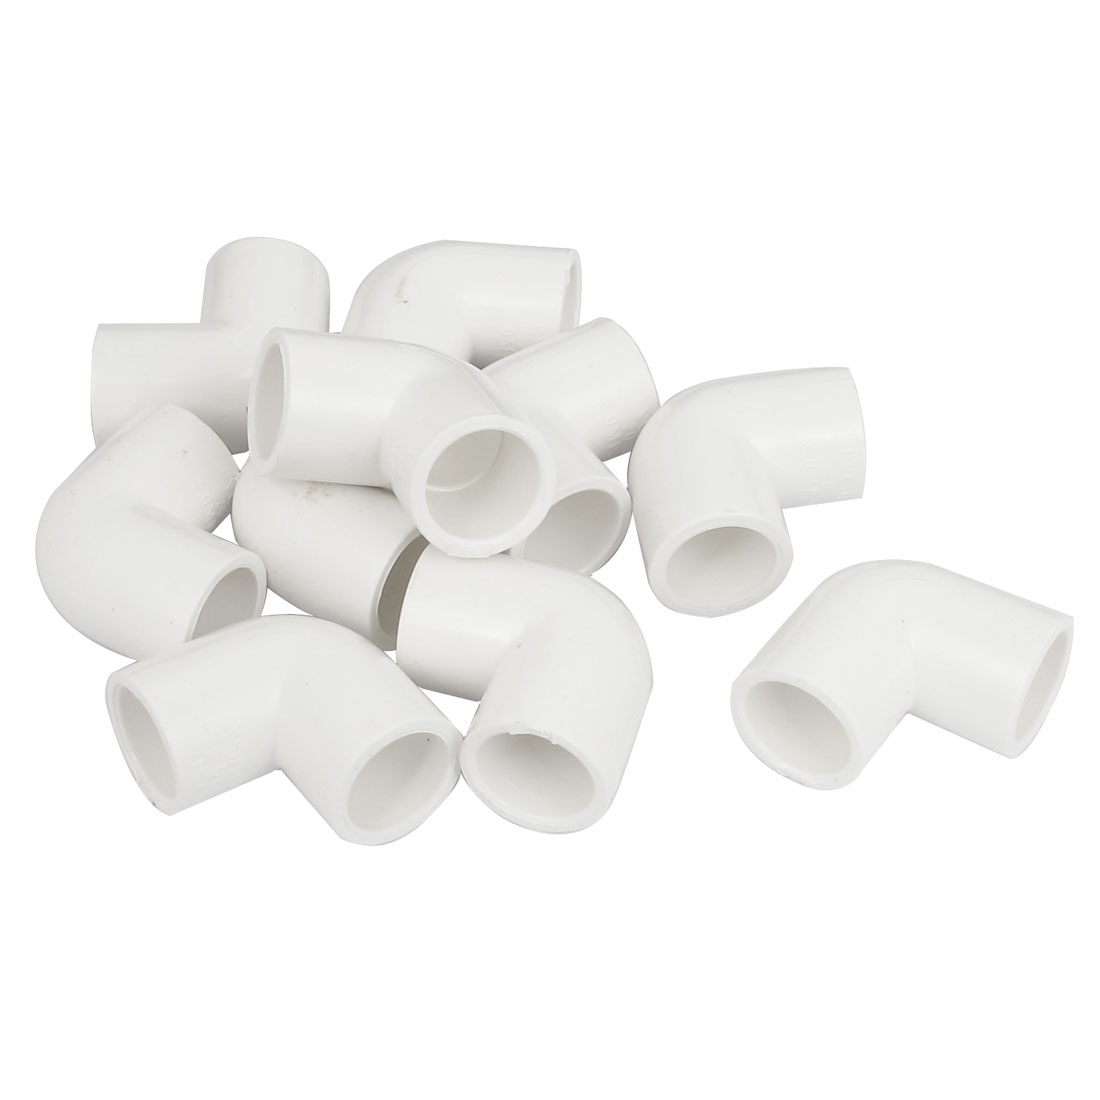 90 Degree Elbow PPR Pipe Connectors White 20mm Inner Diameter 10 Pcs